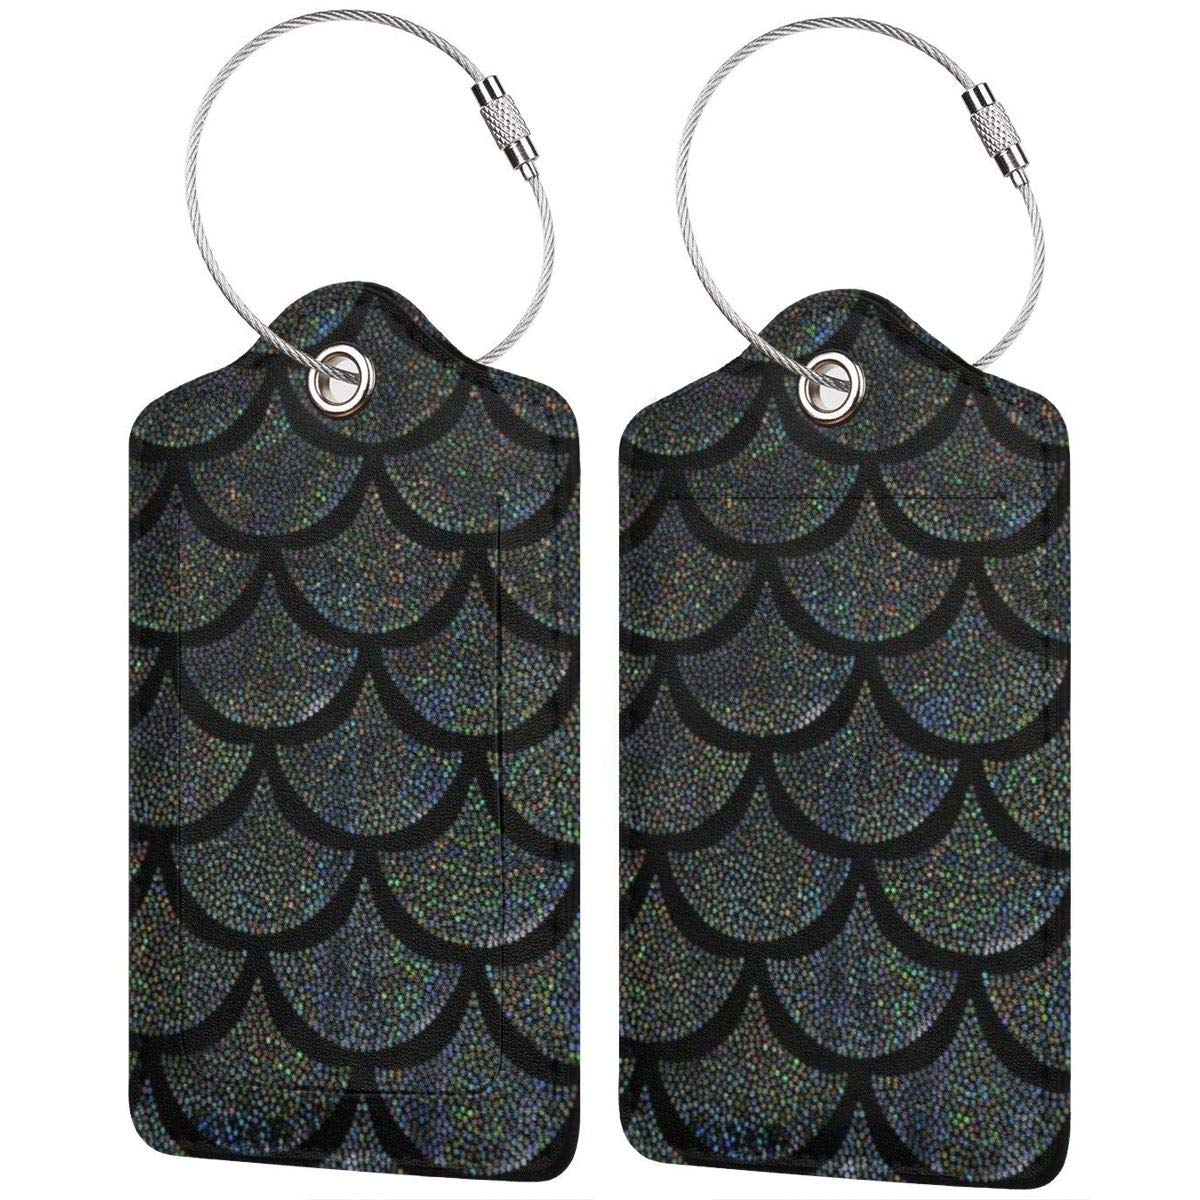 Black Dragon Scale Leather Luggage Tags Personalized Travel Accessories With Privacy Flap